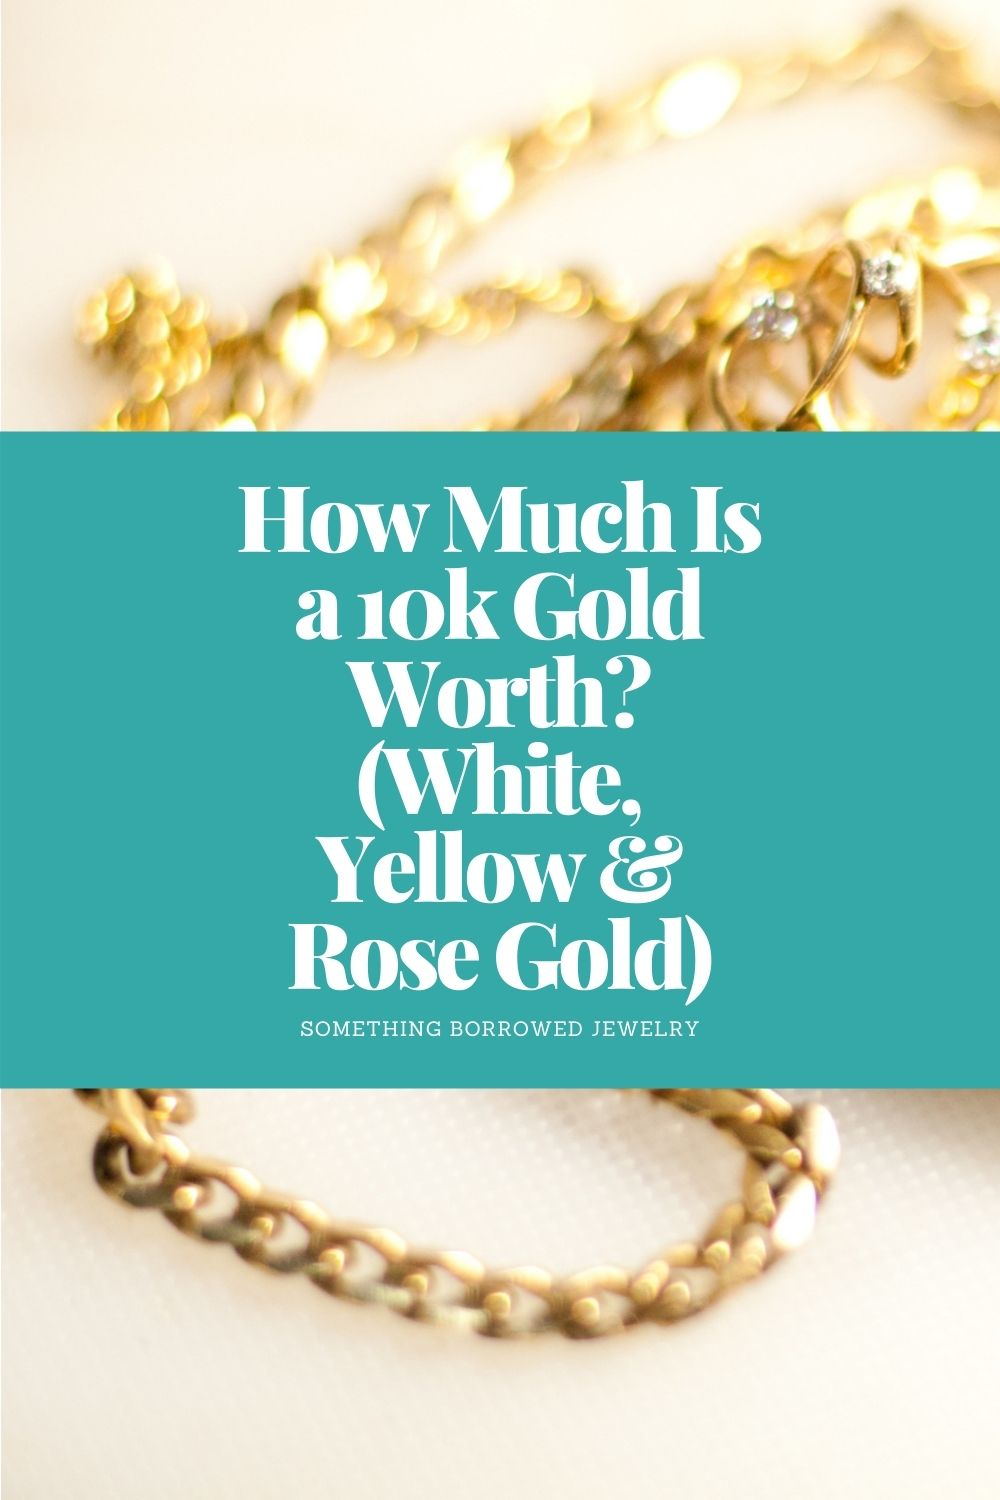 How Much Is a 10k Gold Worth (White, Yellow & Rose Gold) pin